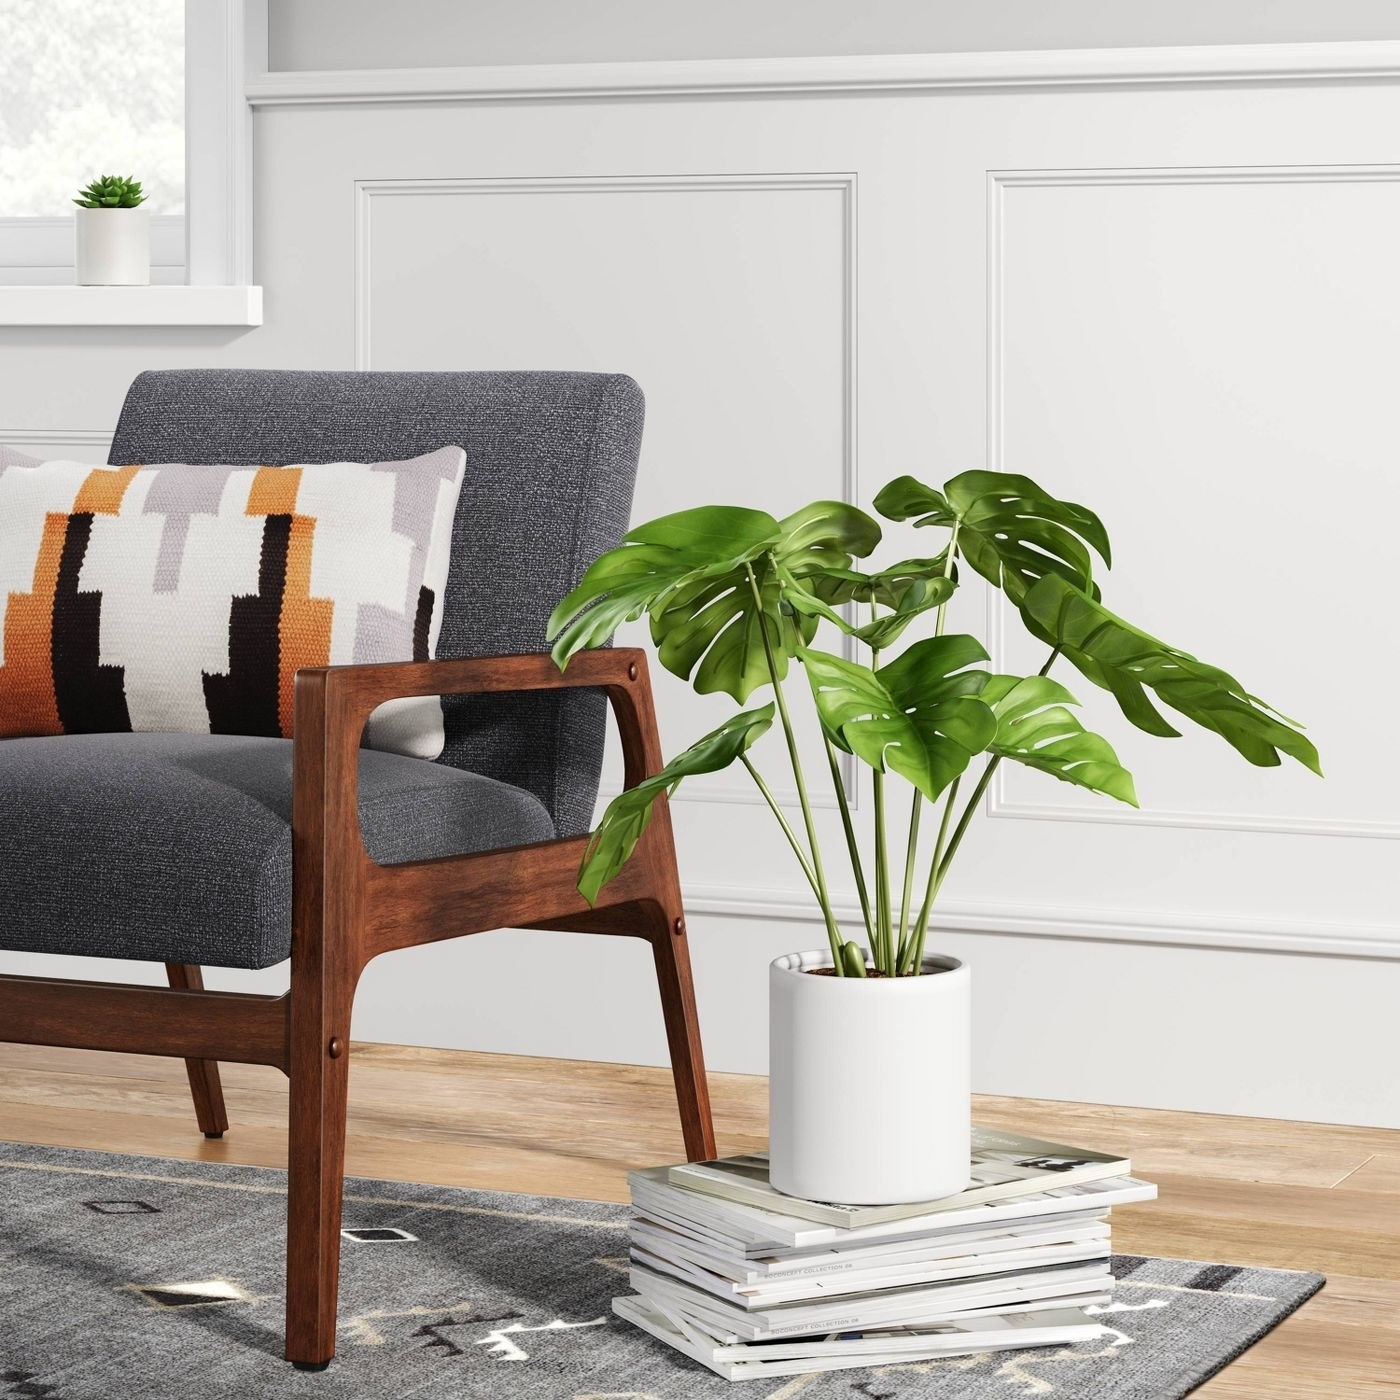 the fake plant in a white pot on the floor of a room